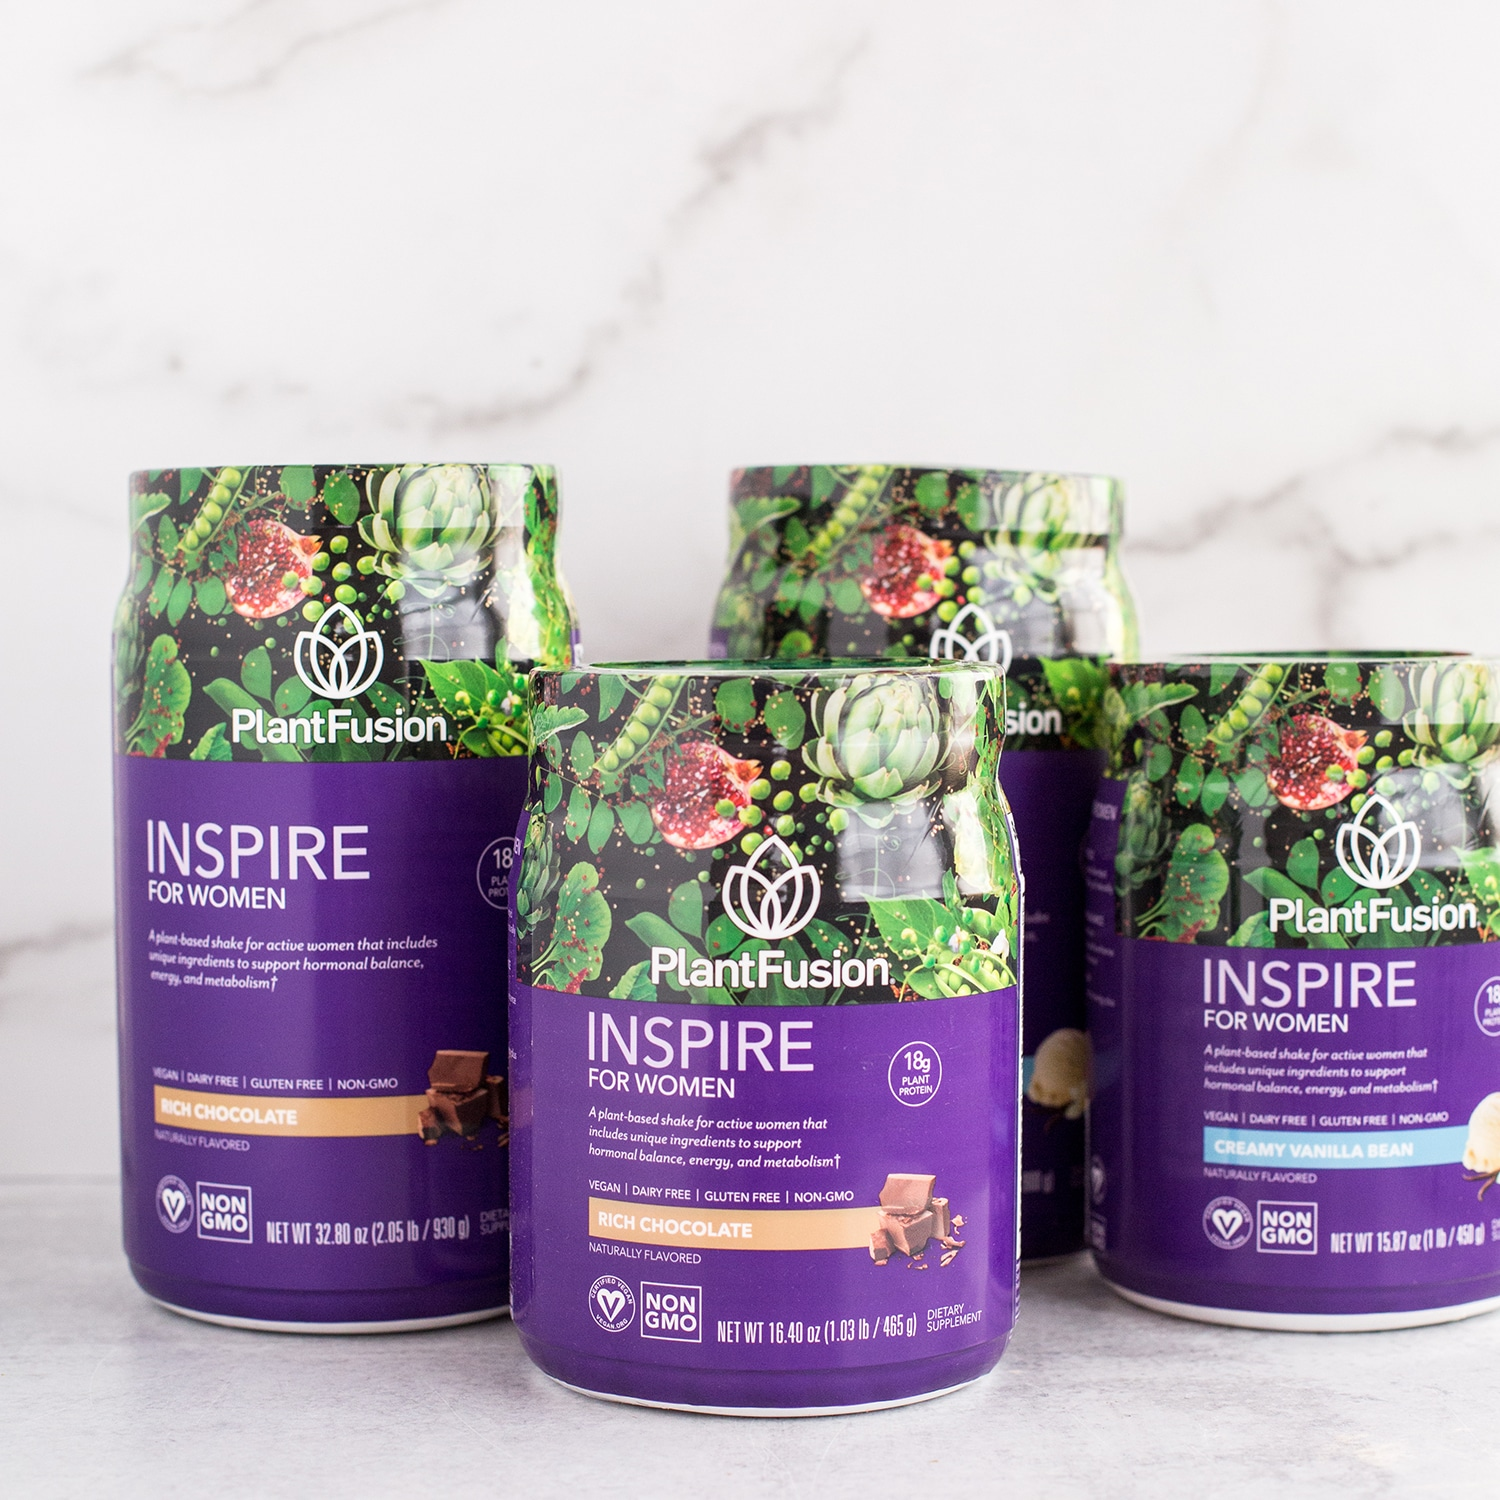 PlantFusion Launches INSPIRE FOR WOMEN Plant-Based Protein Supplement